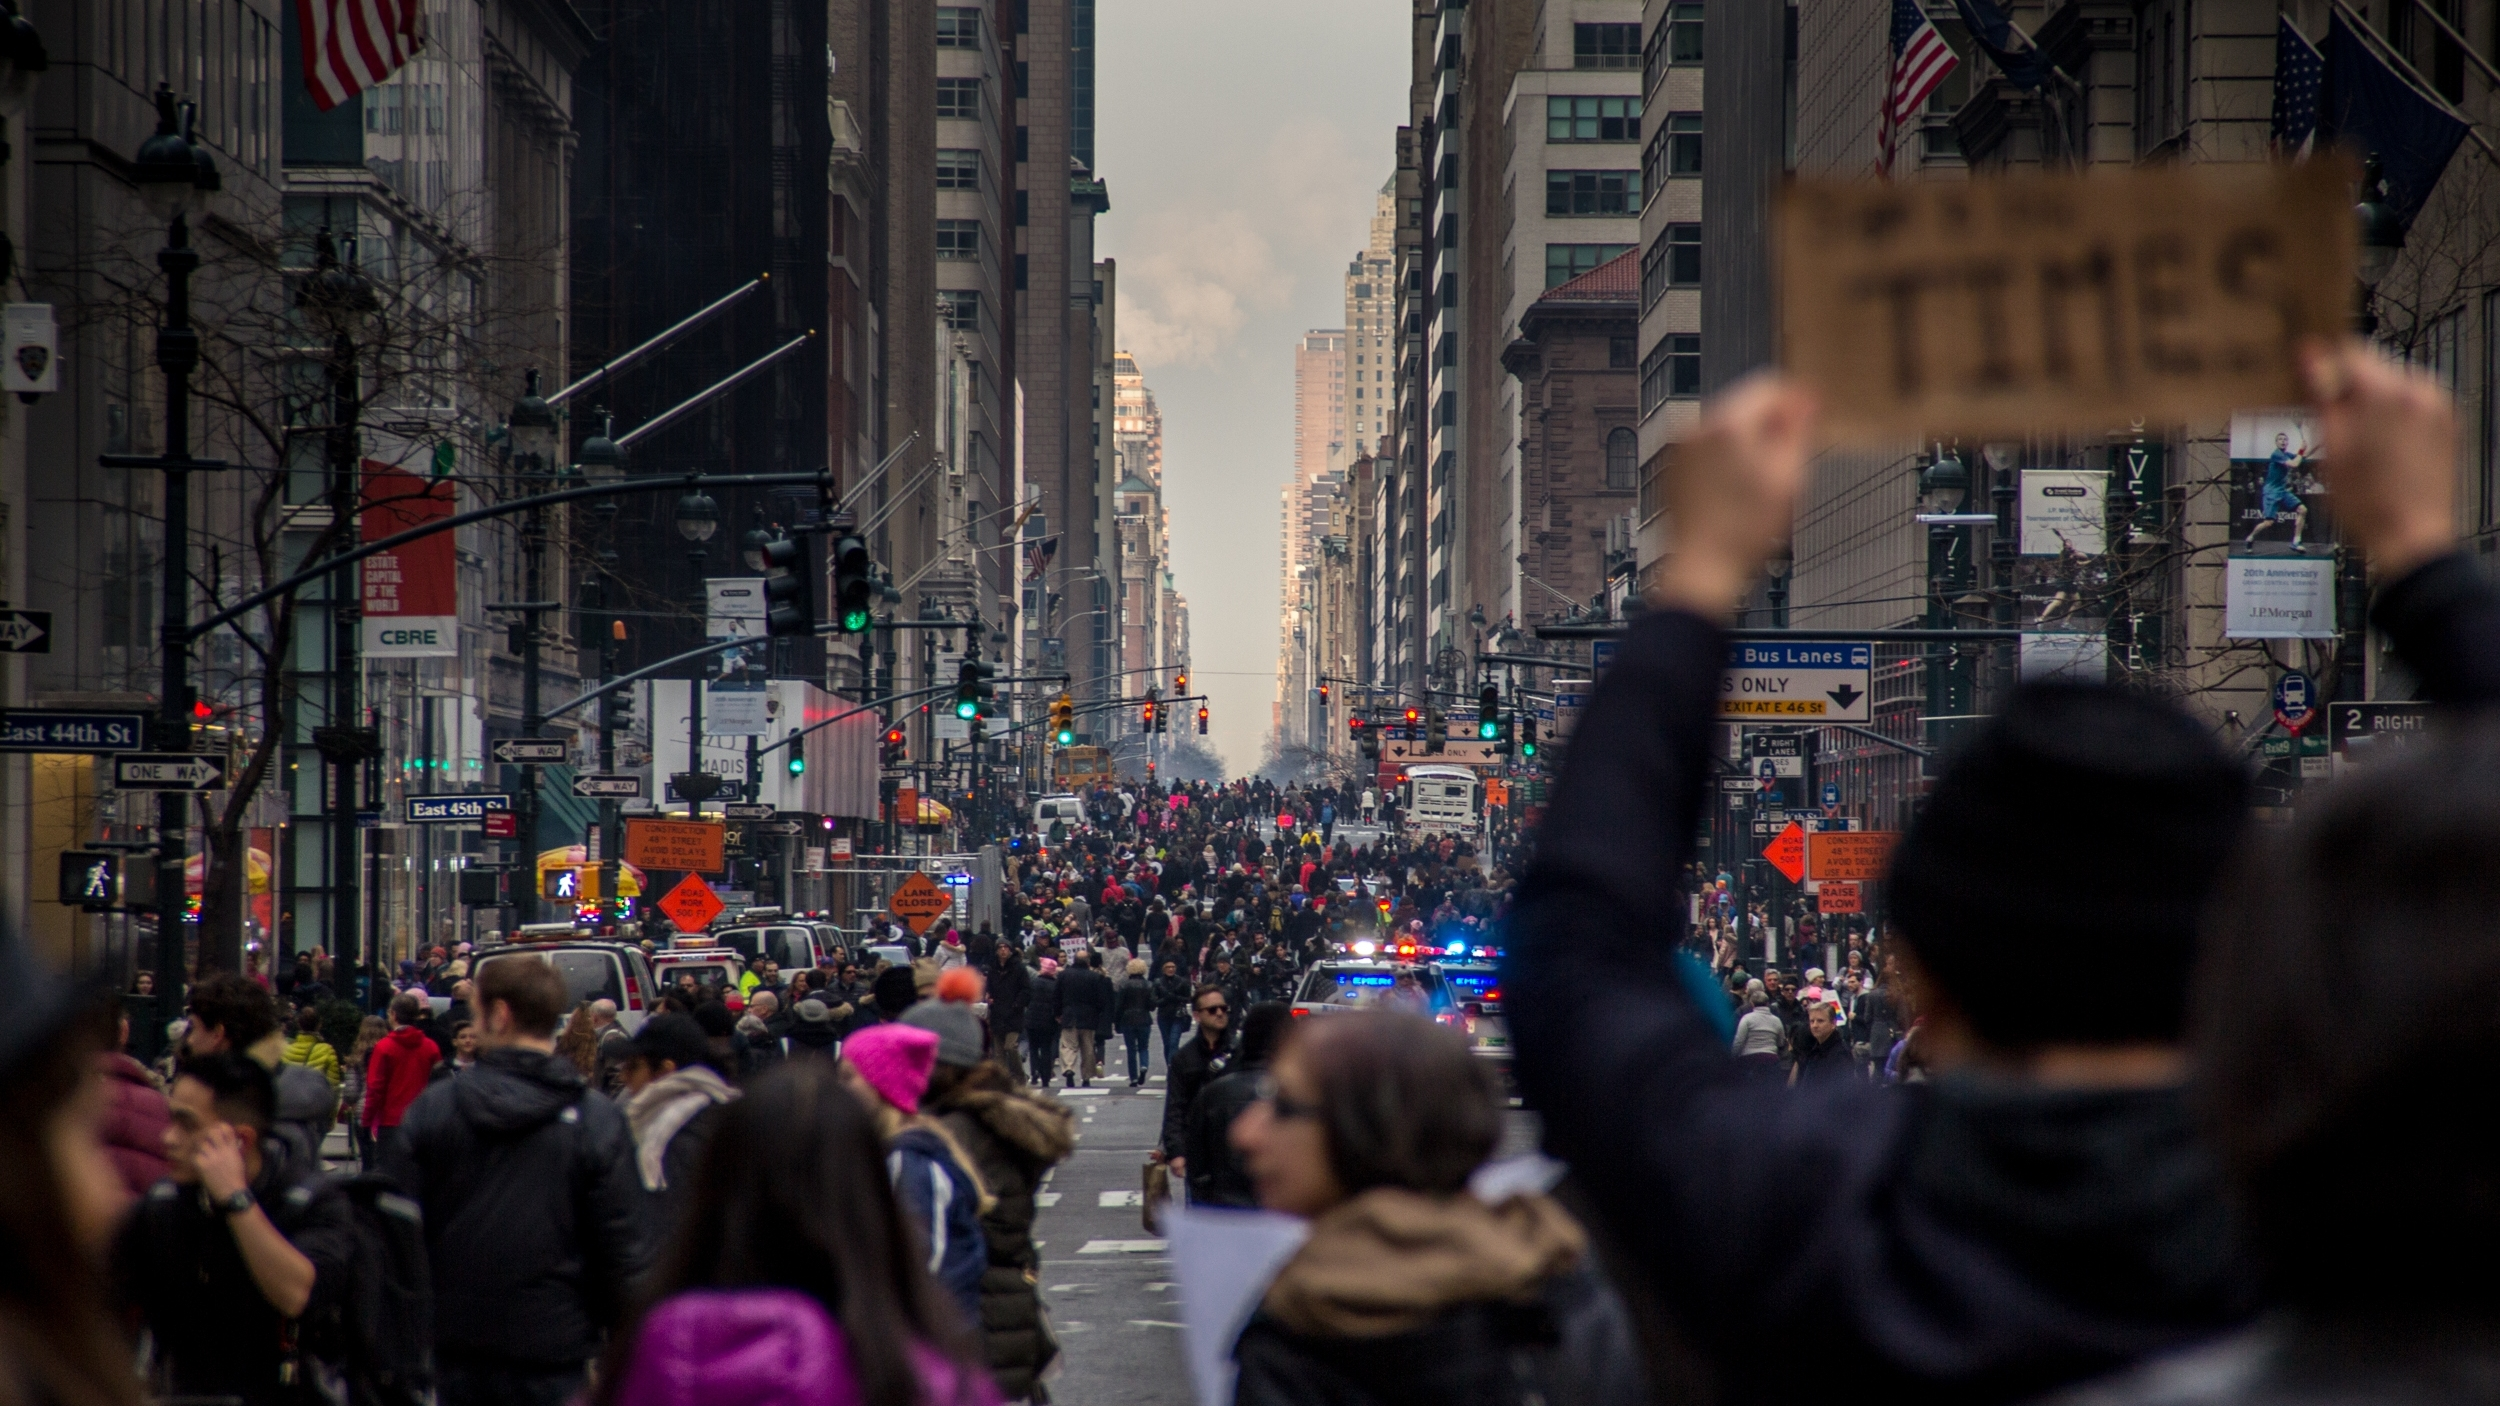 Womens March 360 - This 360° documentary short brings viewers into the streets alongside participants of the 2017 Women's March in New York City - a historic turnout of support for women's rights and equality. Captured in 360°to help understand the scope of how large an event this was.